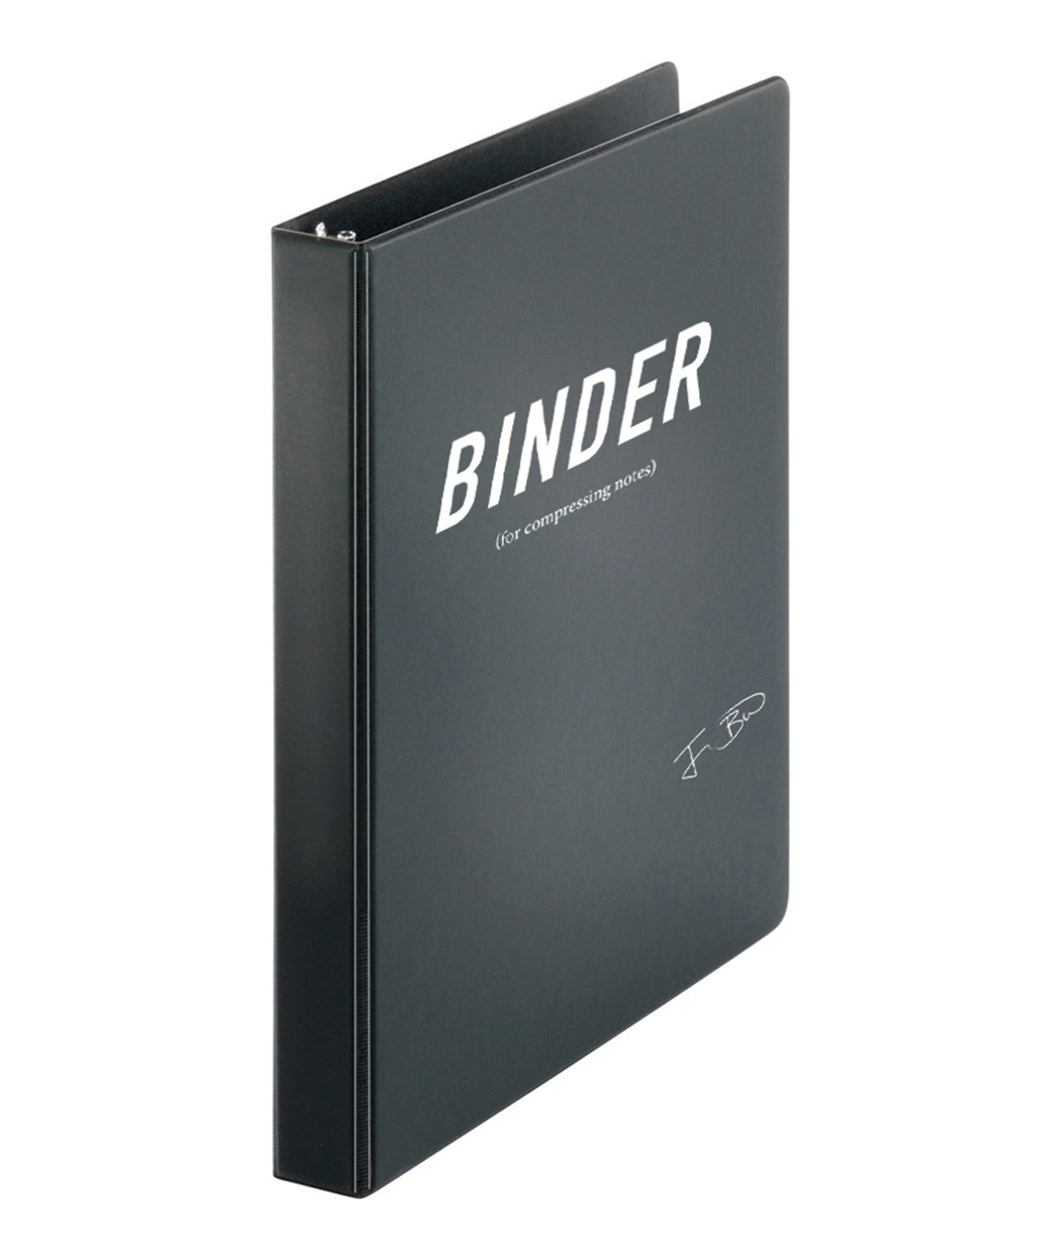 Binder (For Compressing Notes)